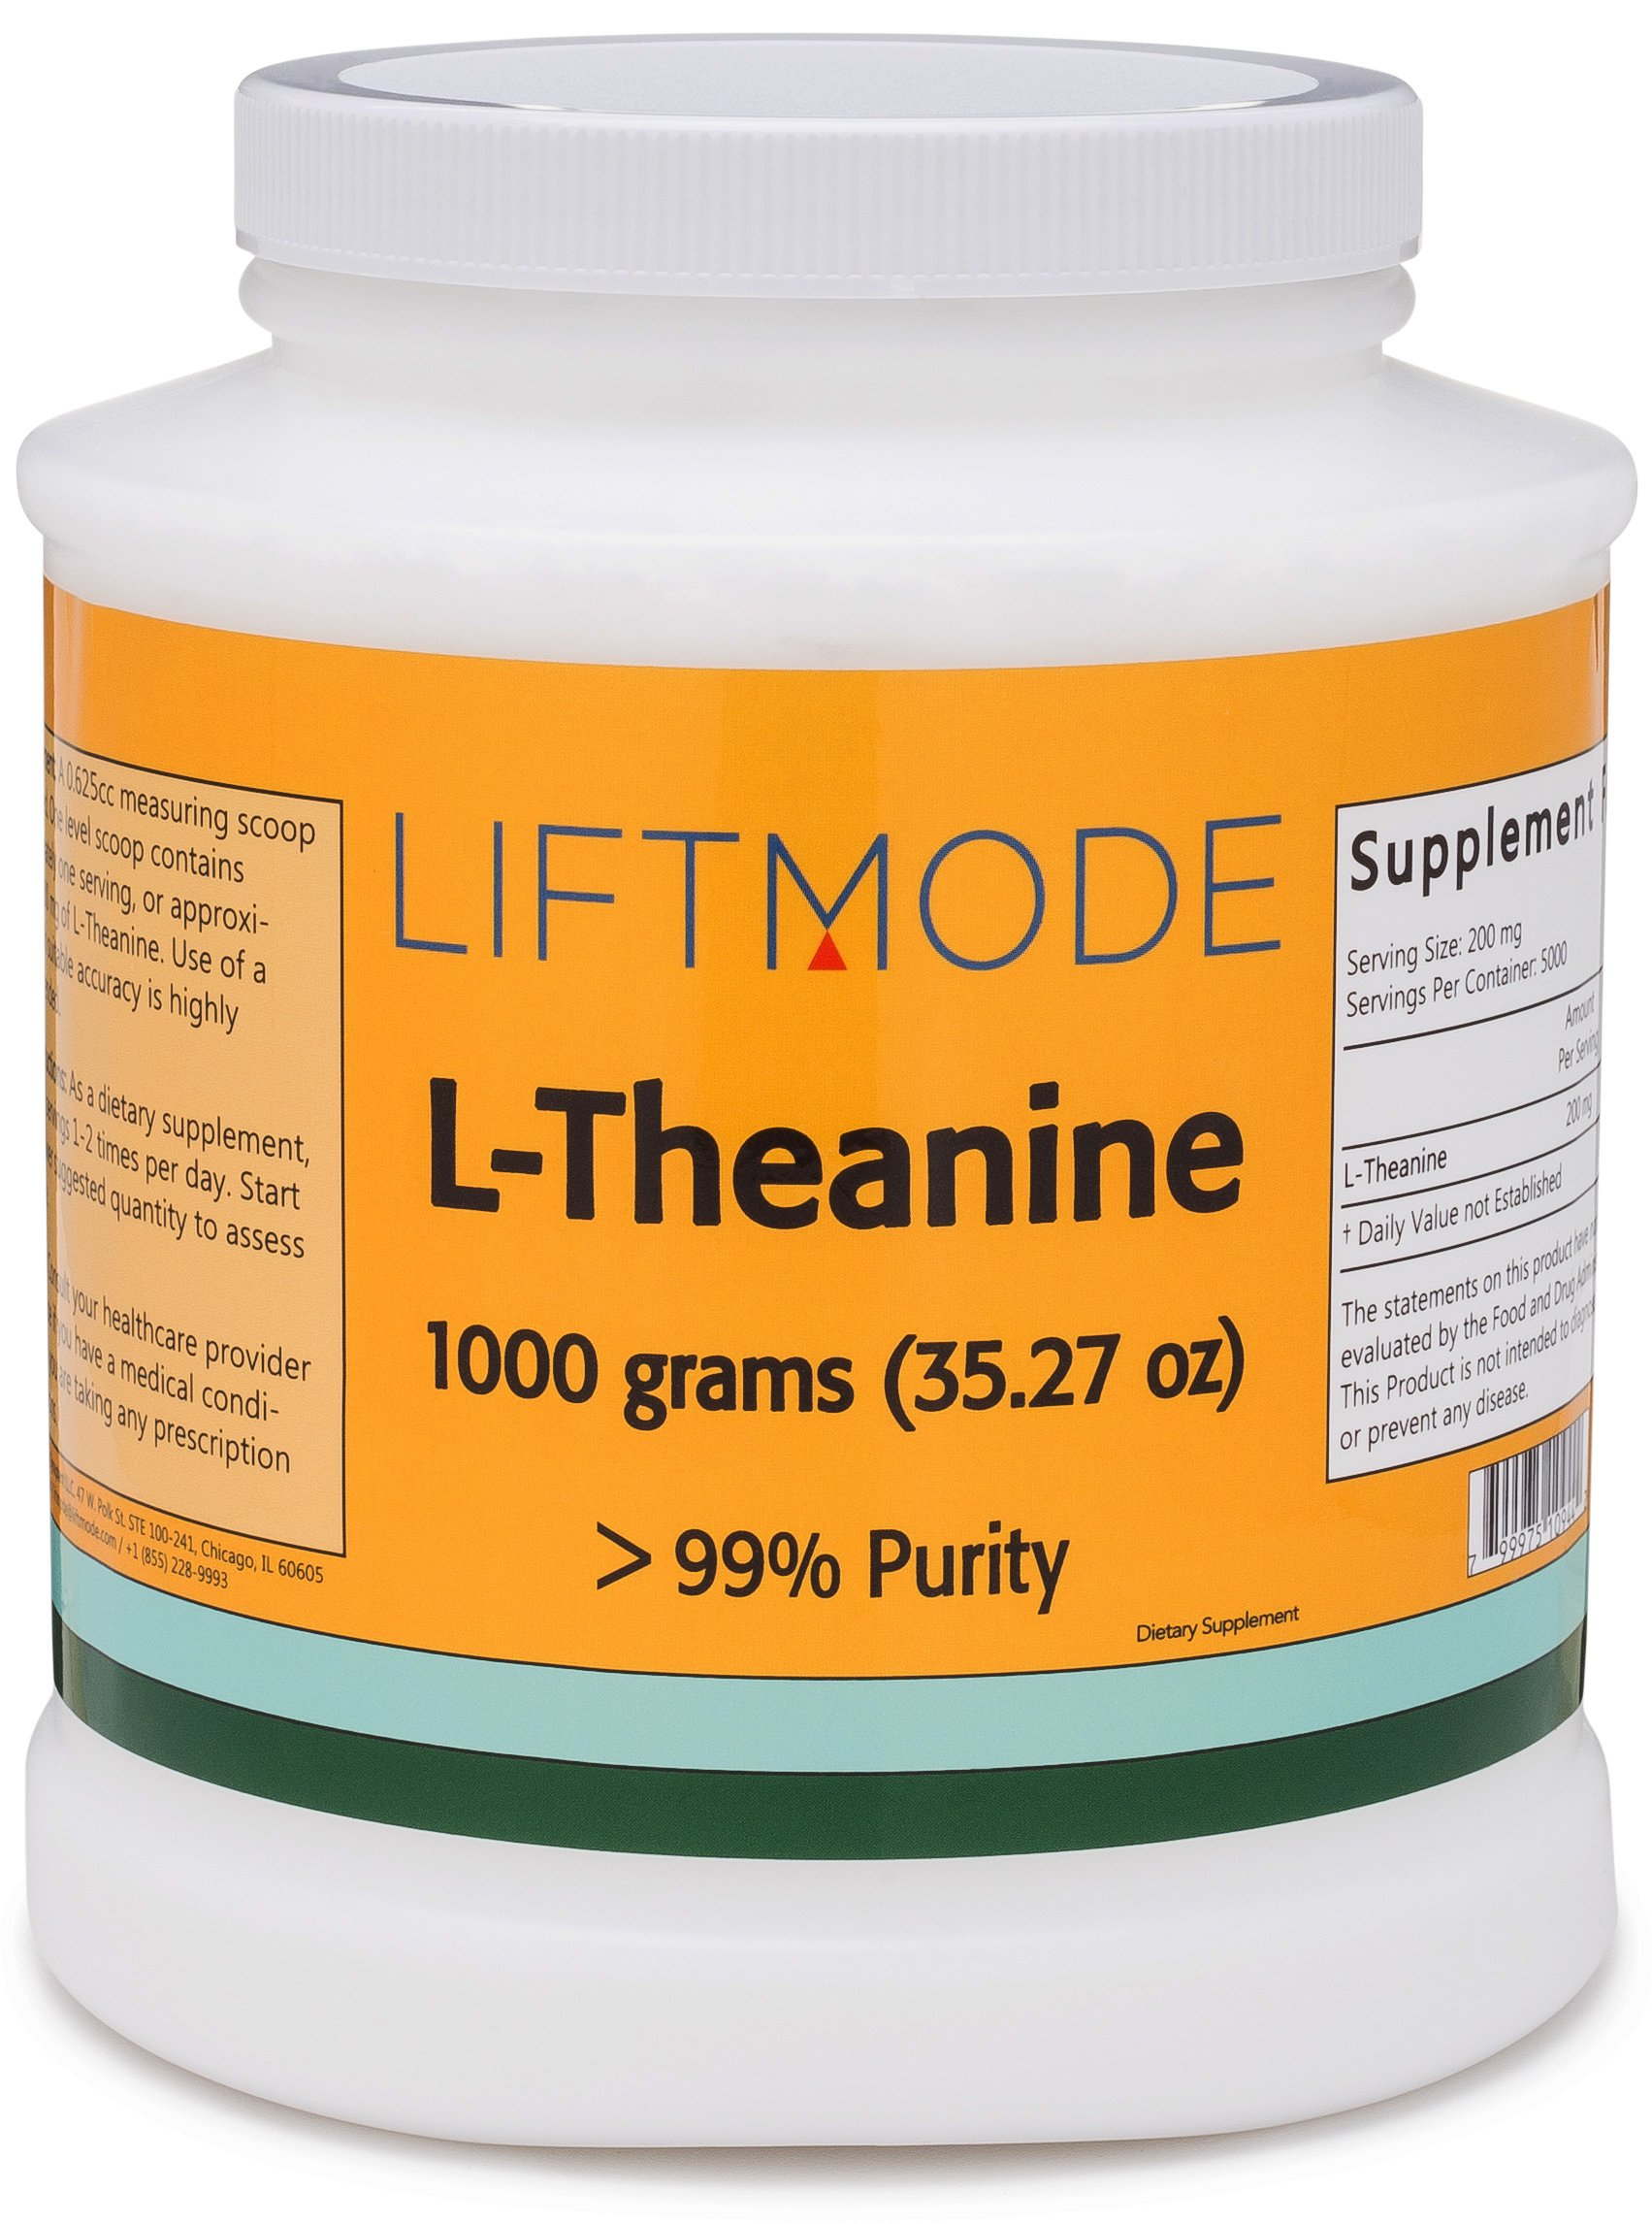 LiftMode L-Theanine 99+% Pure Bulk Powder - 1000 Grams (5000 Servings at 200 mg) | #Top Amino Acid Supplement | For Focus, Stress Relief, Weight Loss, Pre Workout |Vegetarian, Vegan, Non-GMO